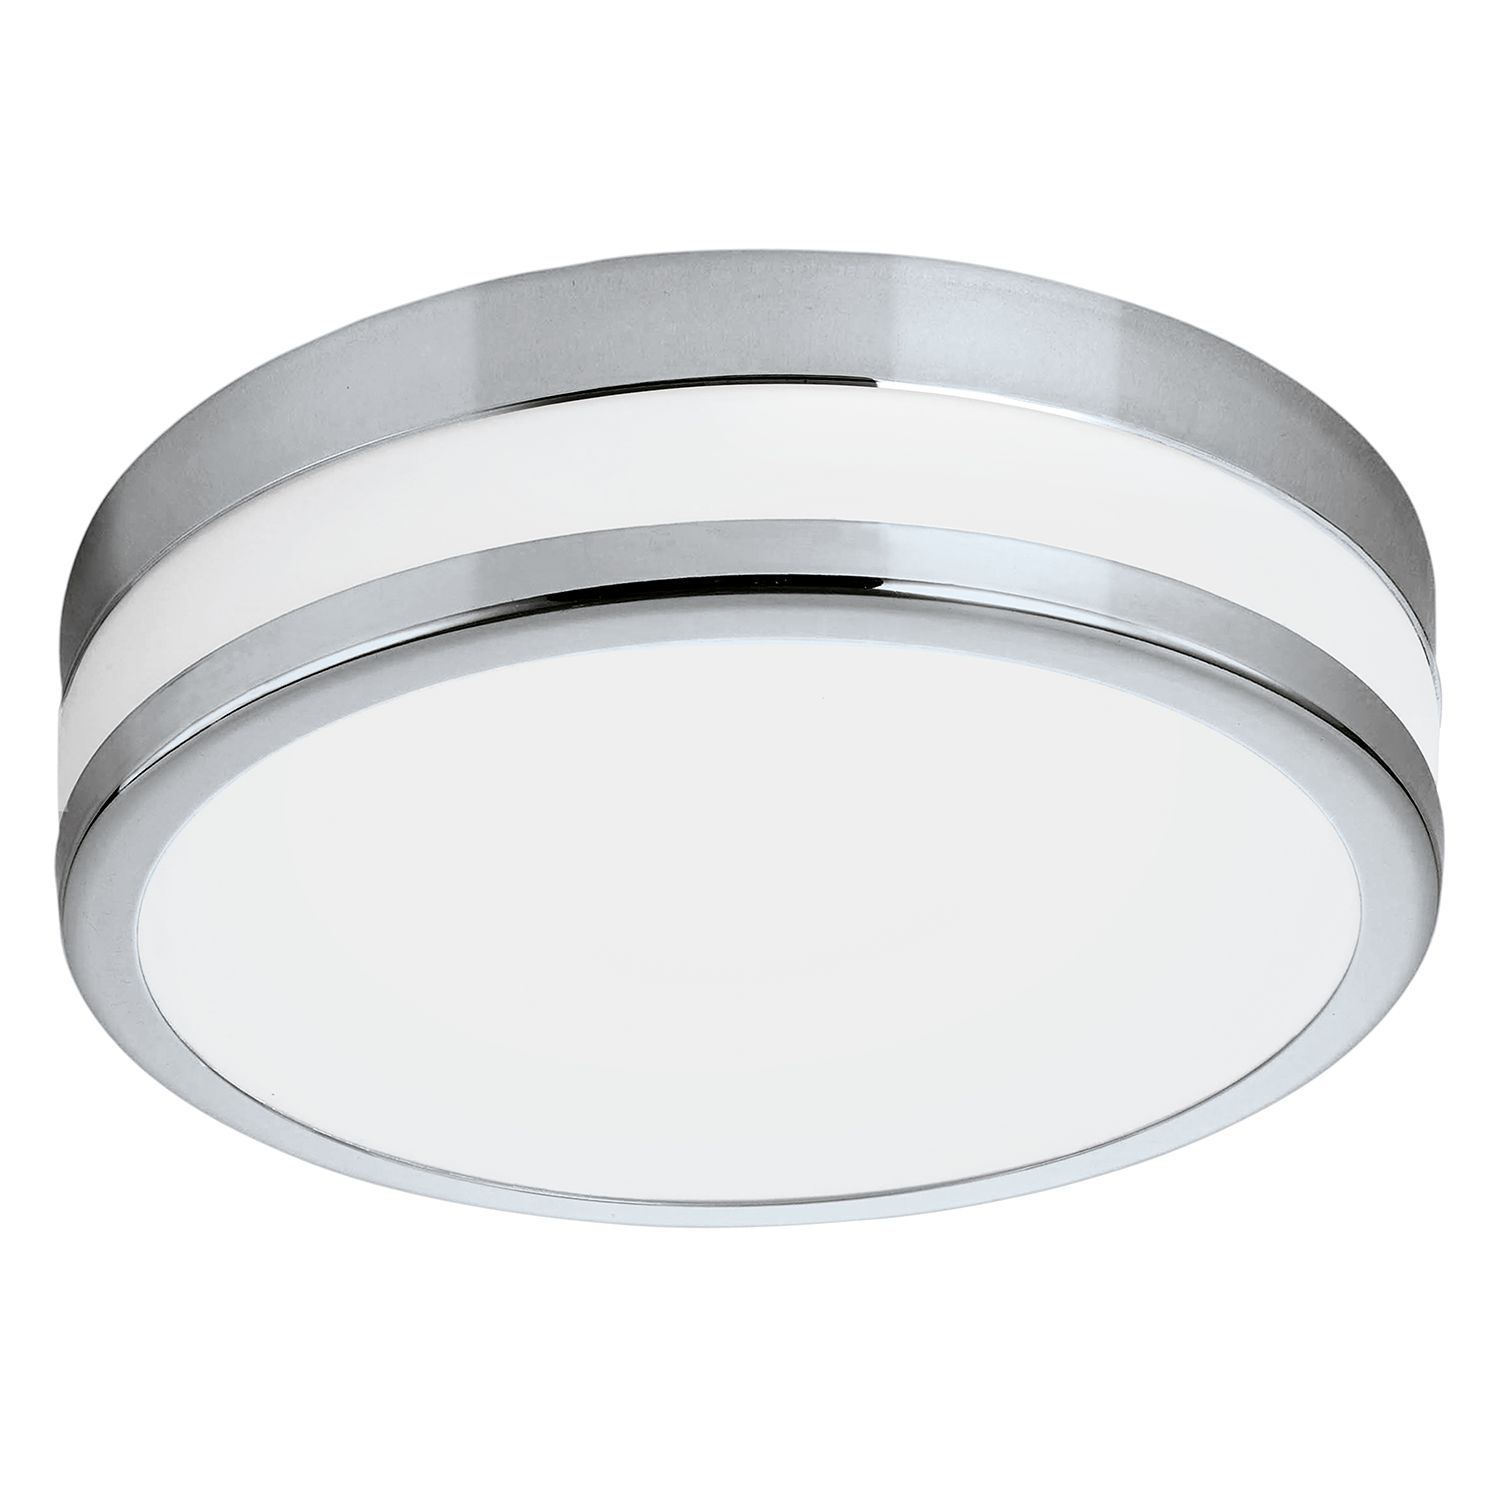 Led Badleuchte Palermo Ii Products In 2019 Led